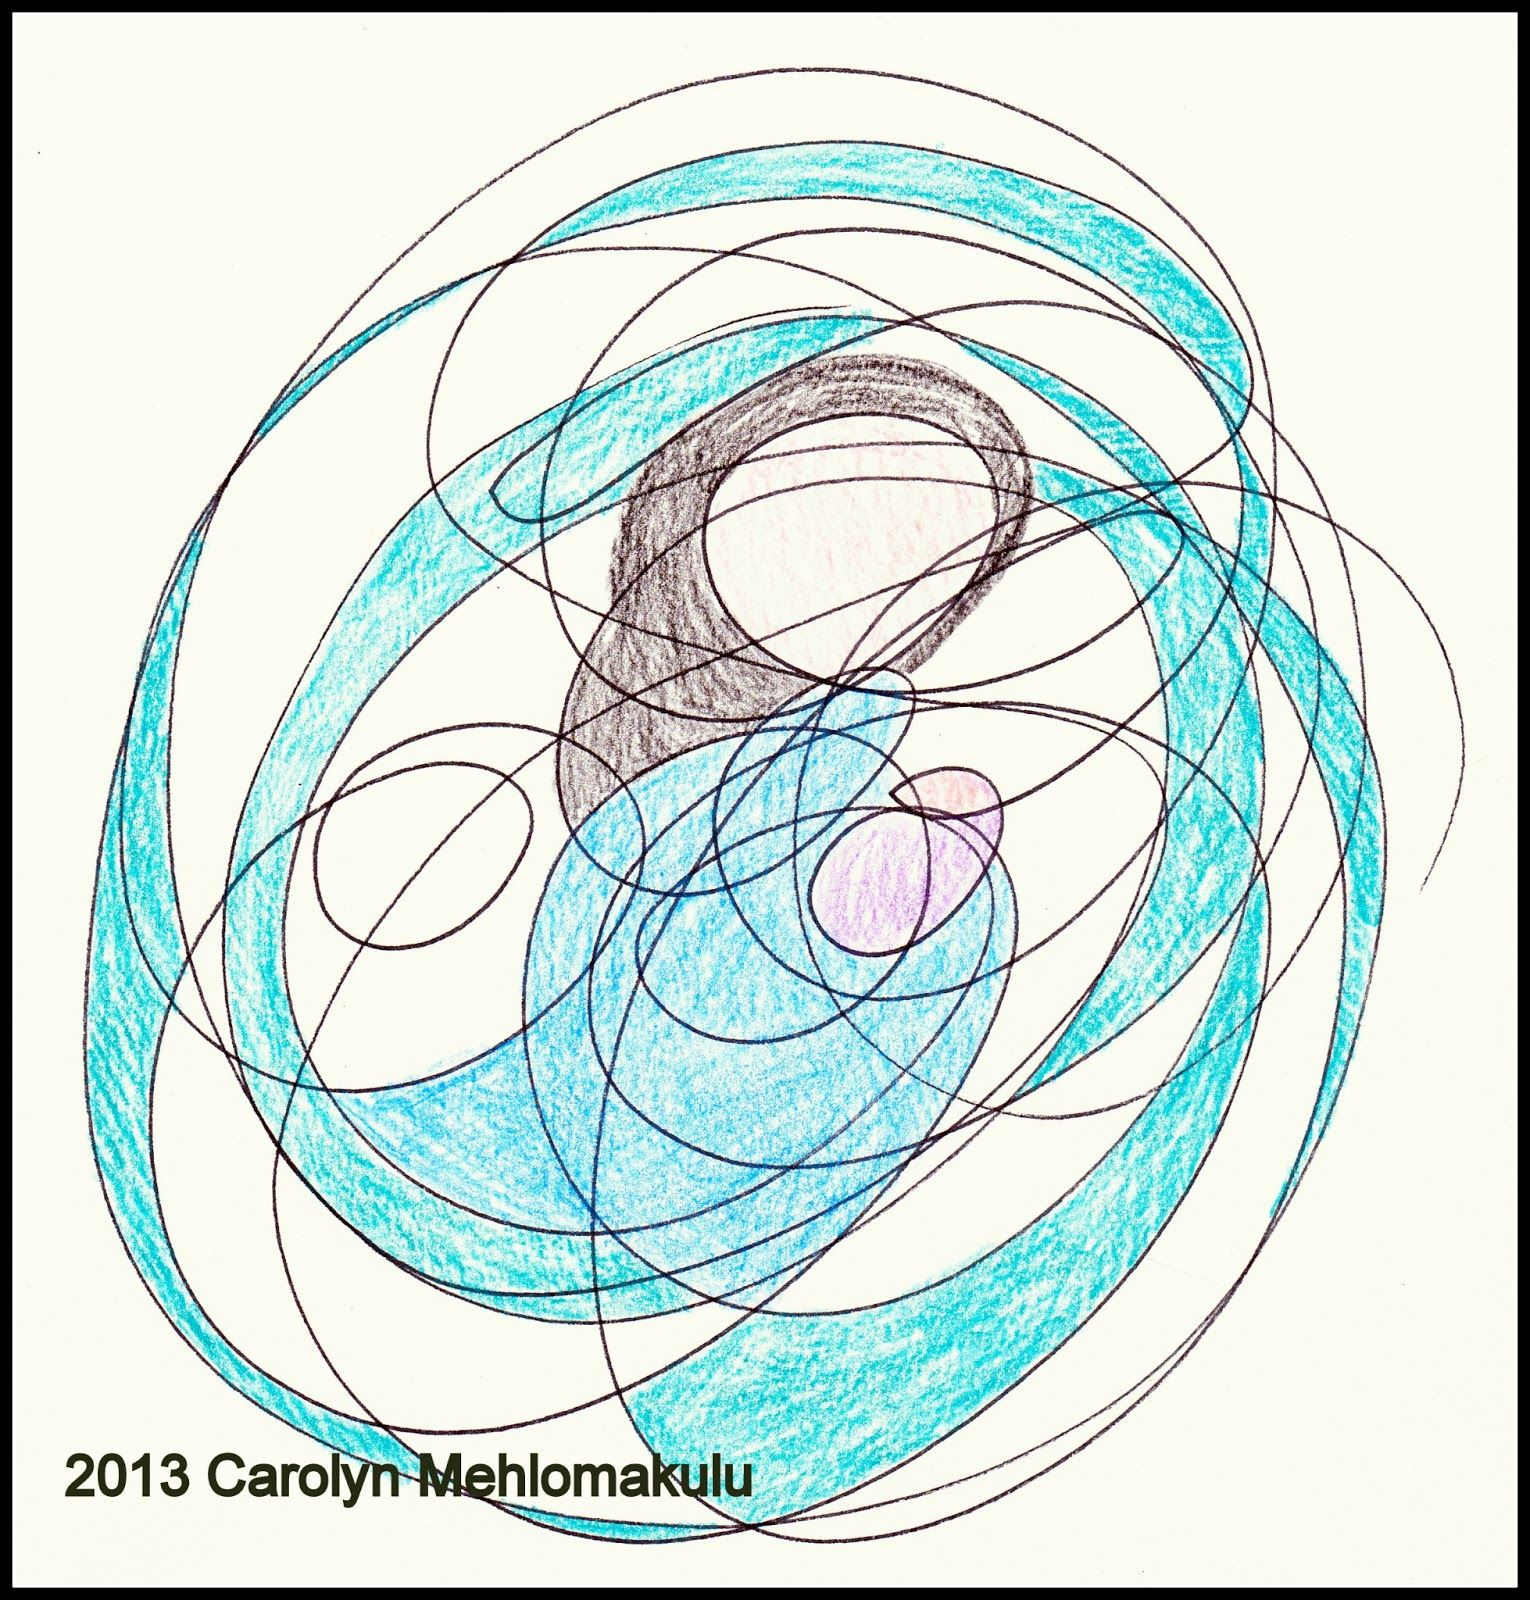 Another Art Therapy Approach Using Scribble Drawings Is To